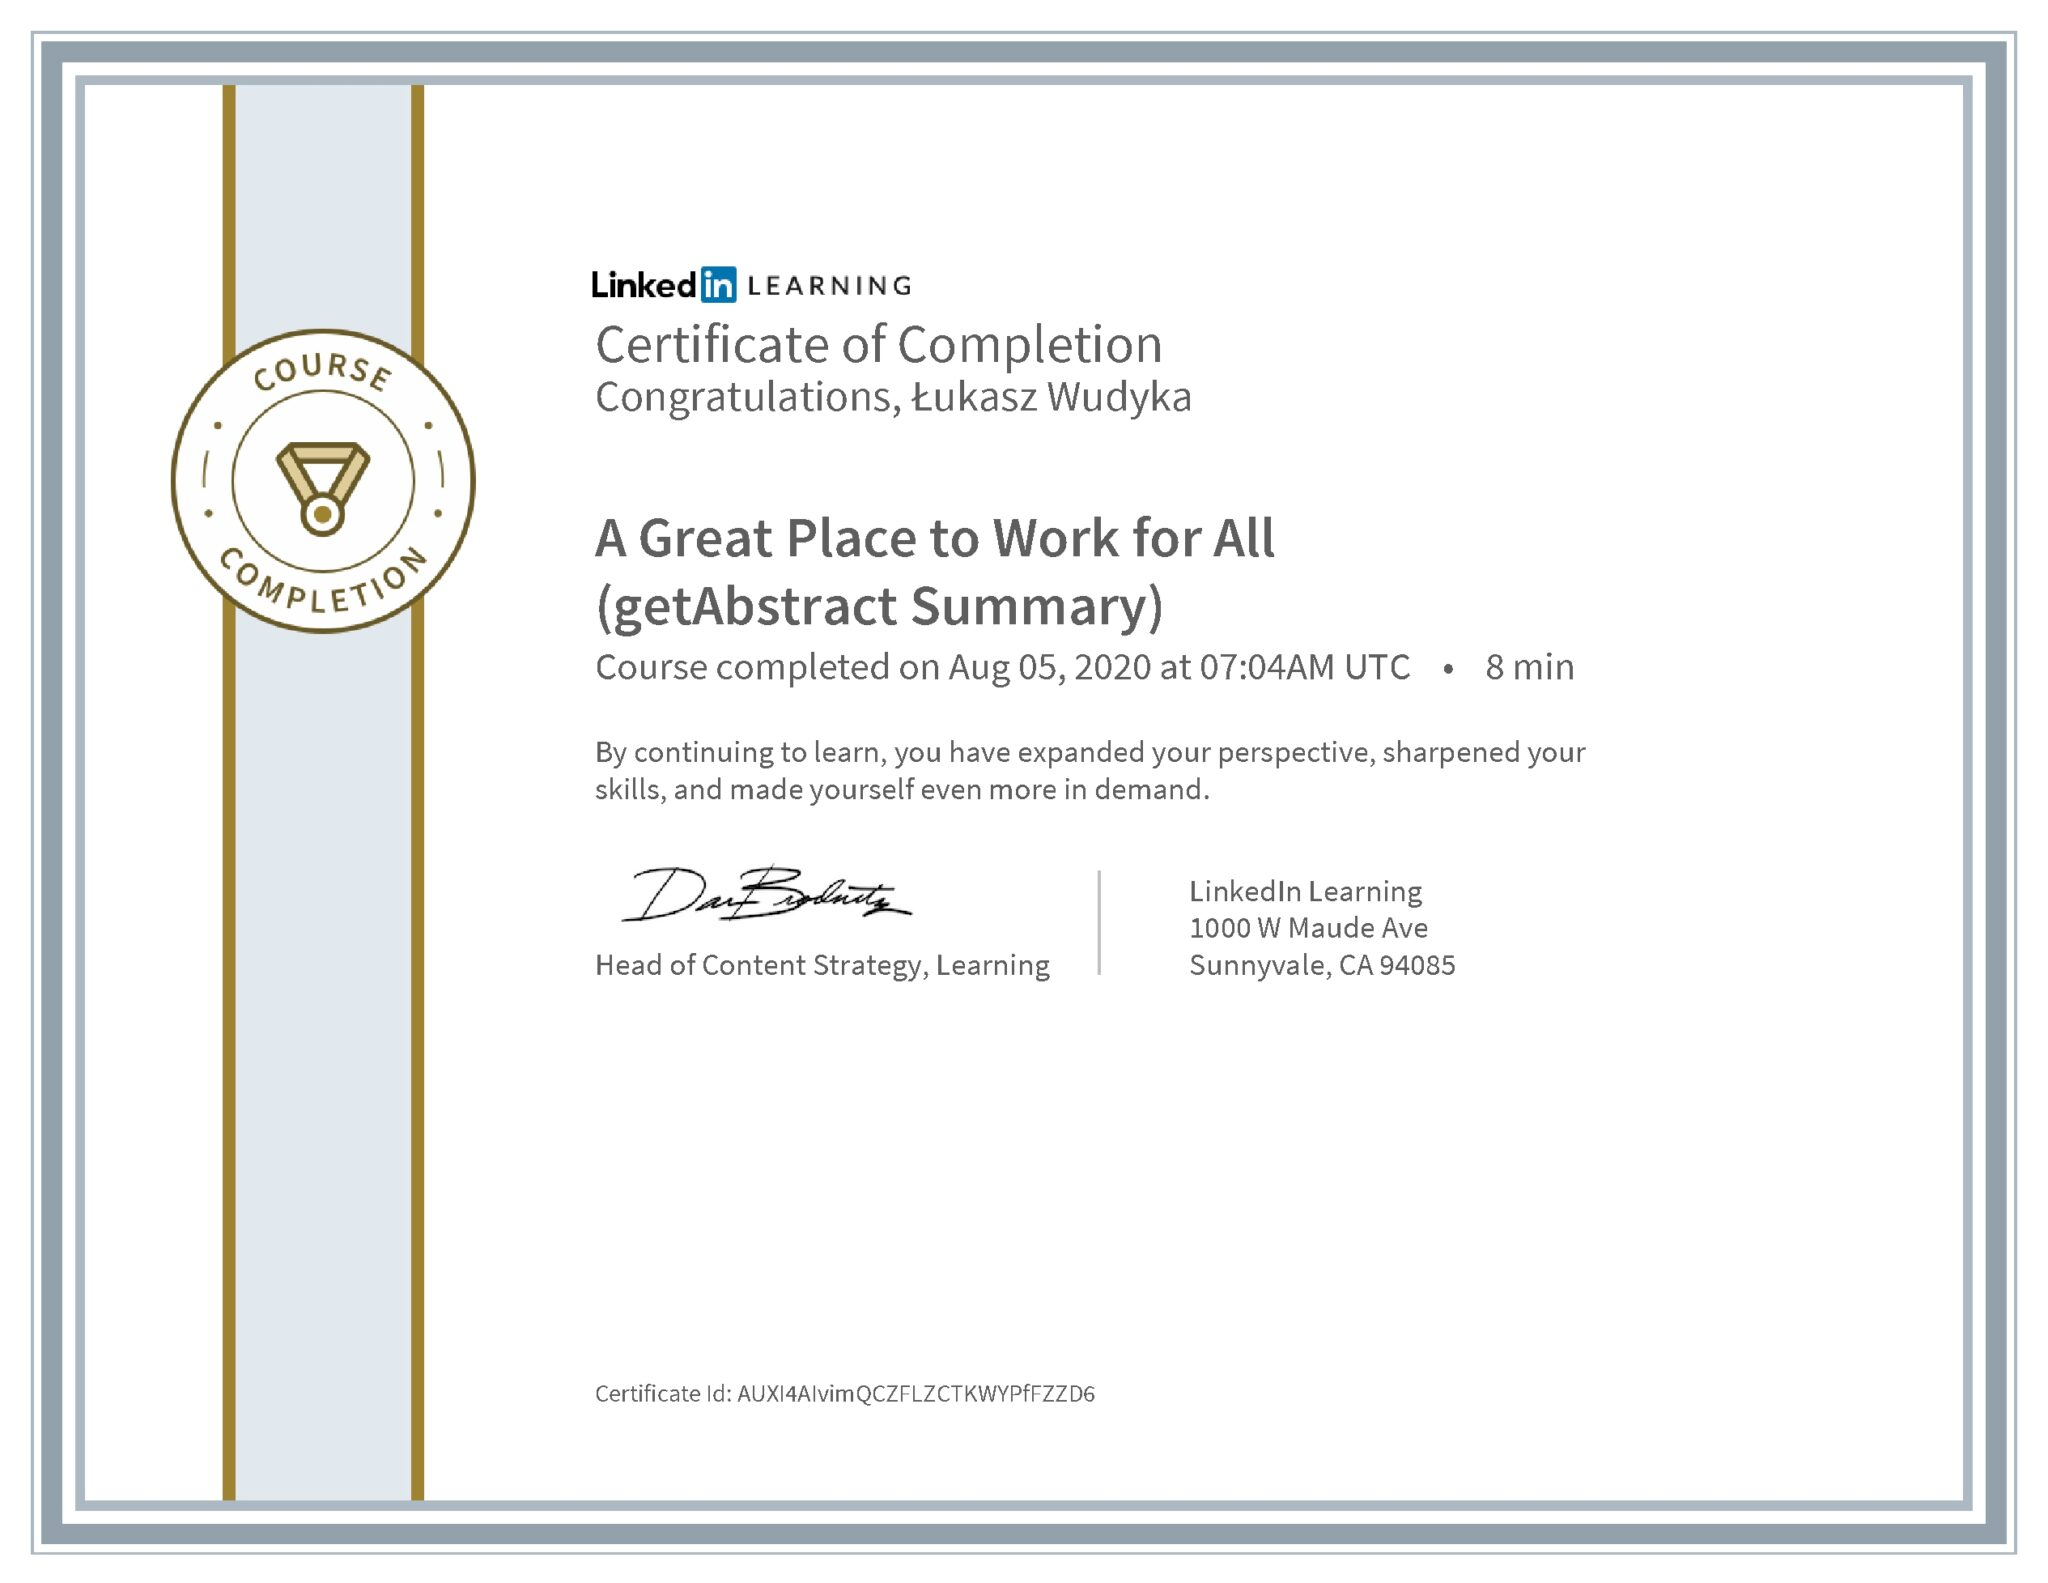 Łukasz Wudyka certyfikat LinkedIn A Great Place to Work for All (getAbstract Summary)